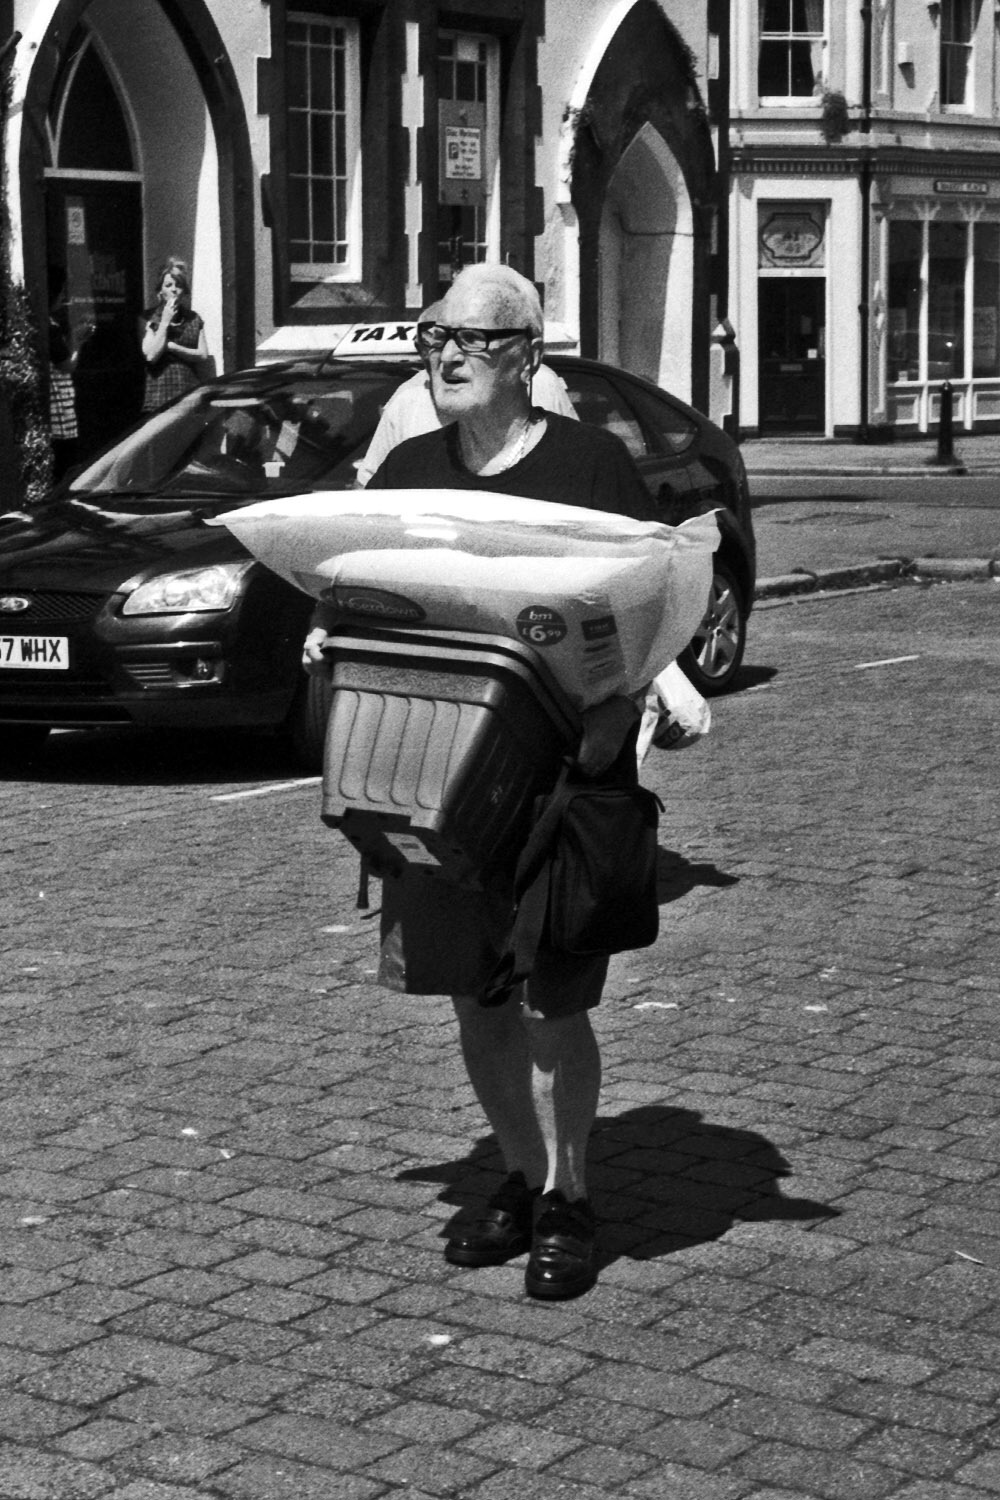 old man in shorts carries packages whitehaven street photography uk photographer kevin shelley prints for sale leica m2 jupiter 8 50 f2